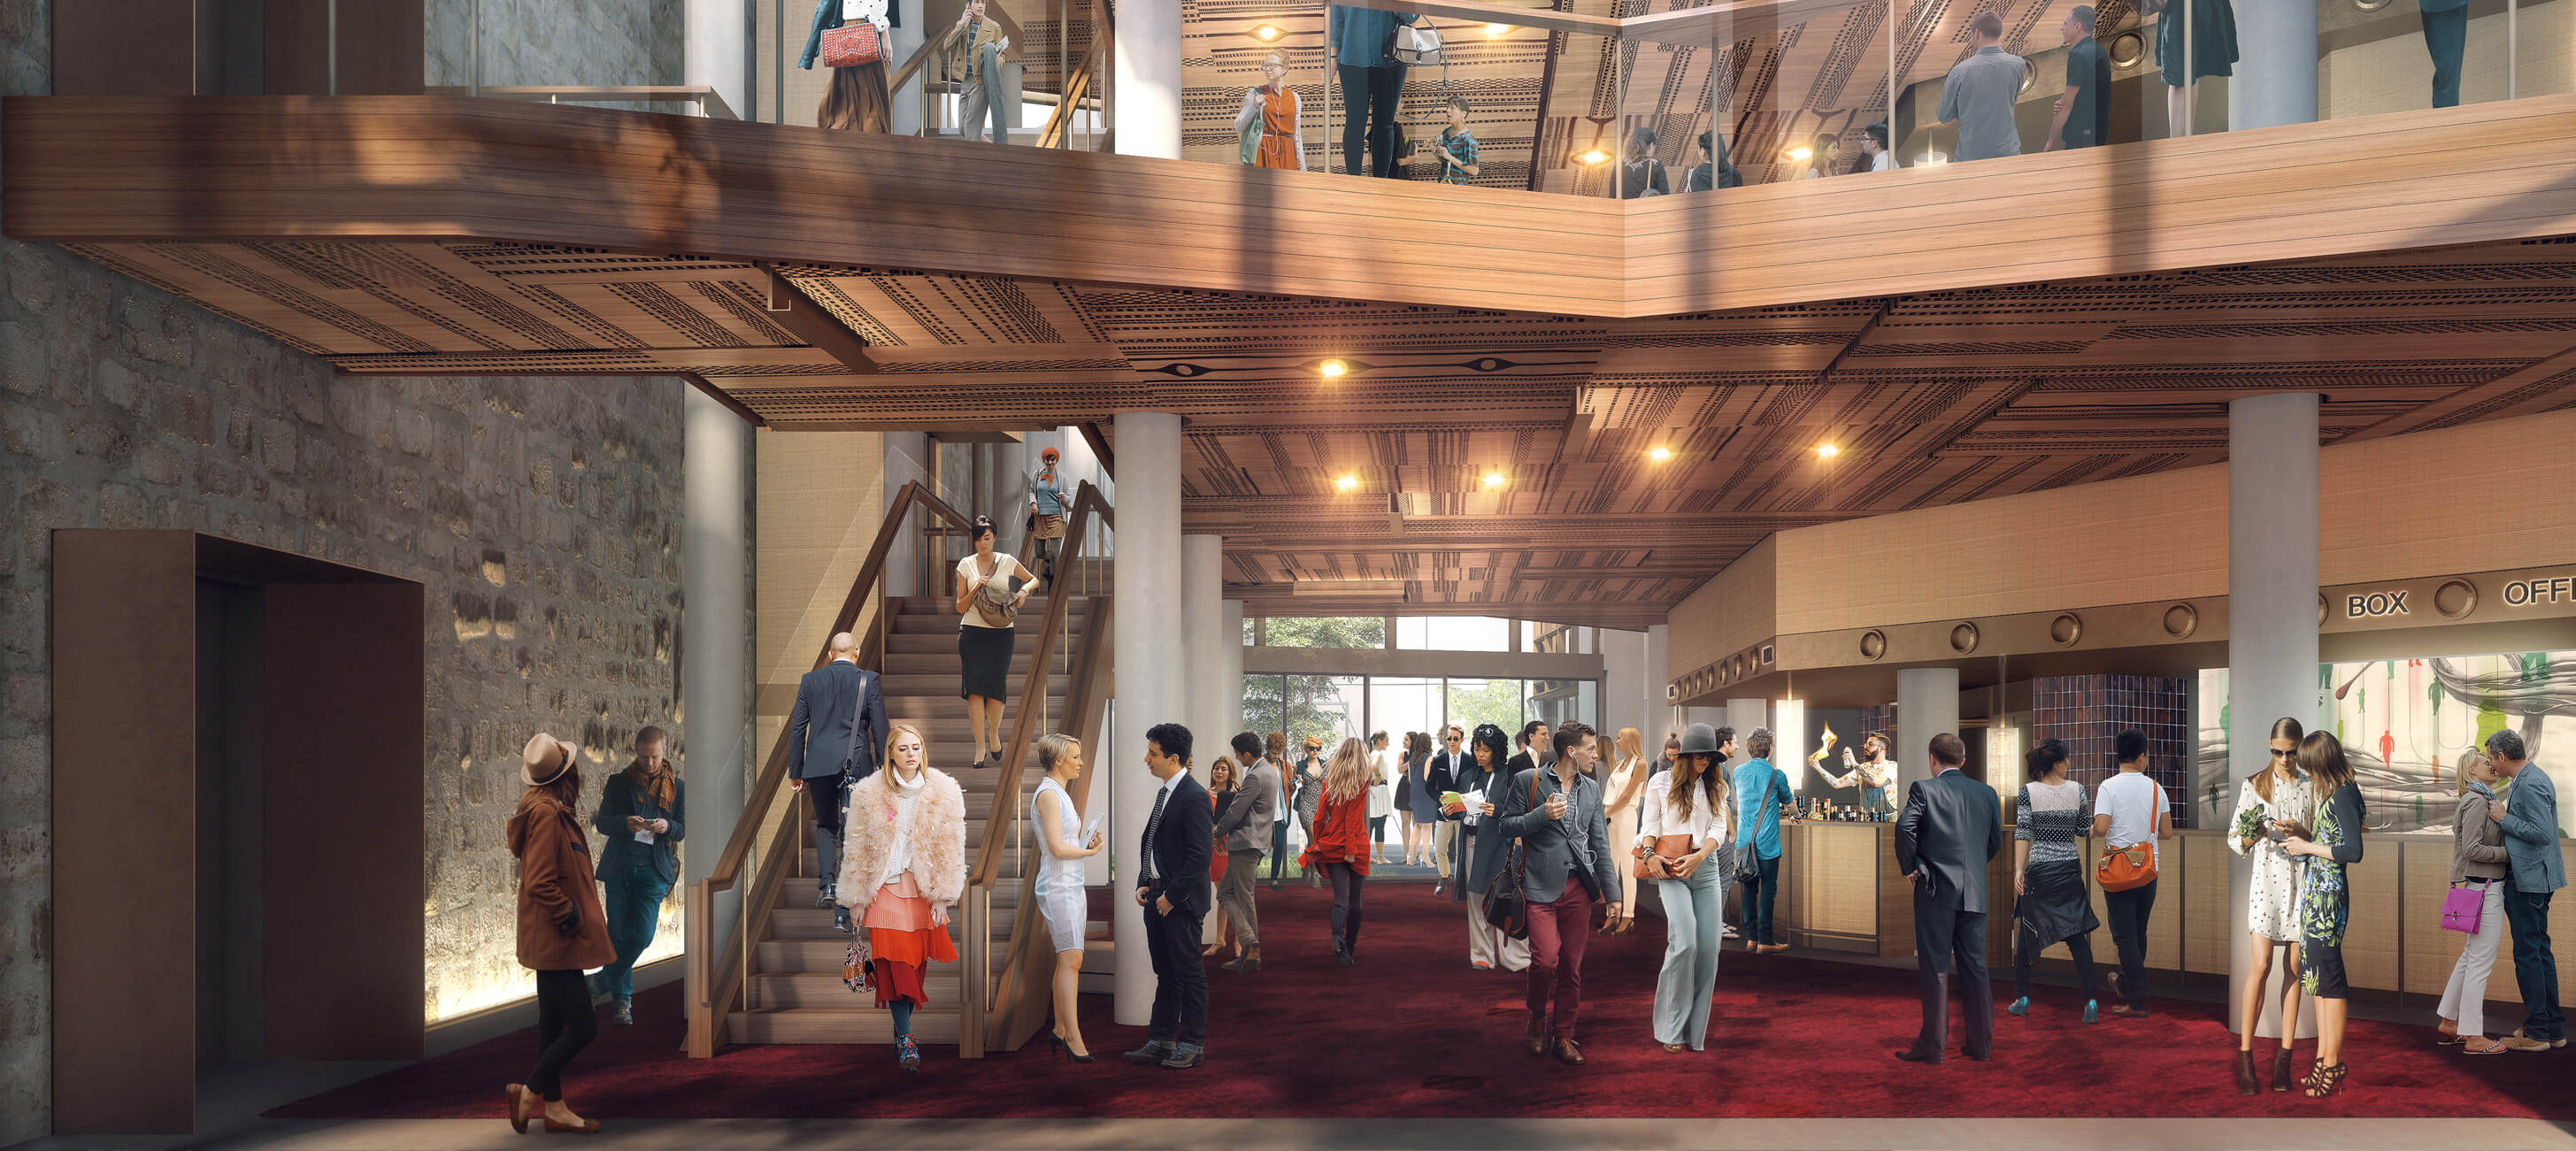 Architectural render of the Hedberg Atrium (credits: Liminal Architecture and WOHA)